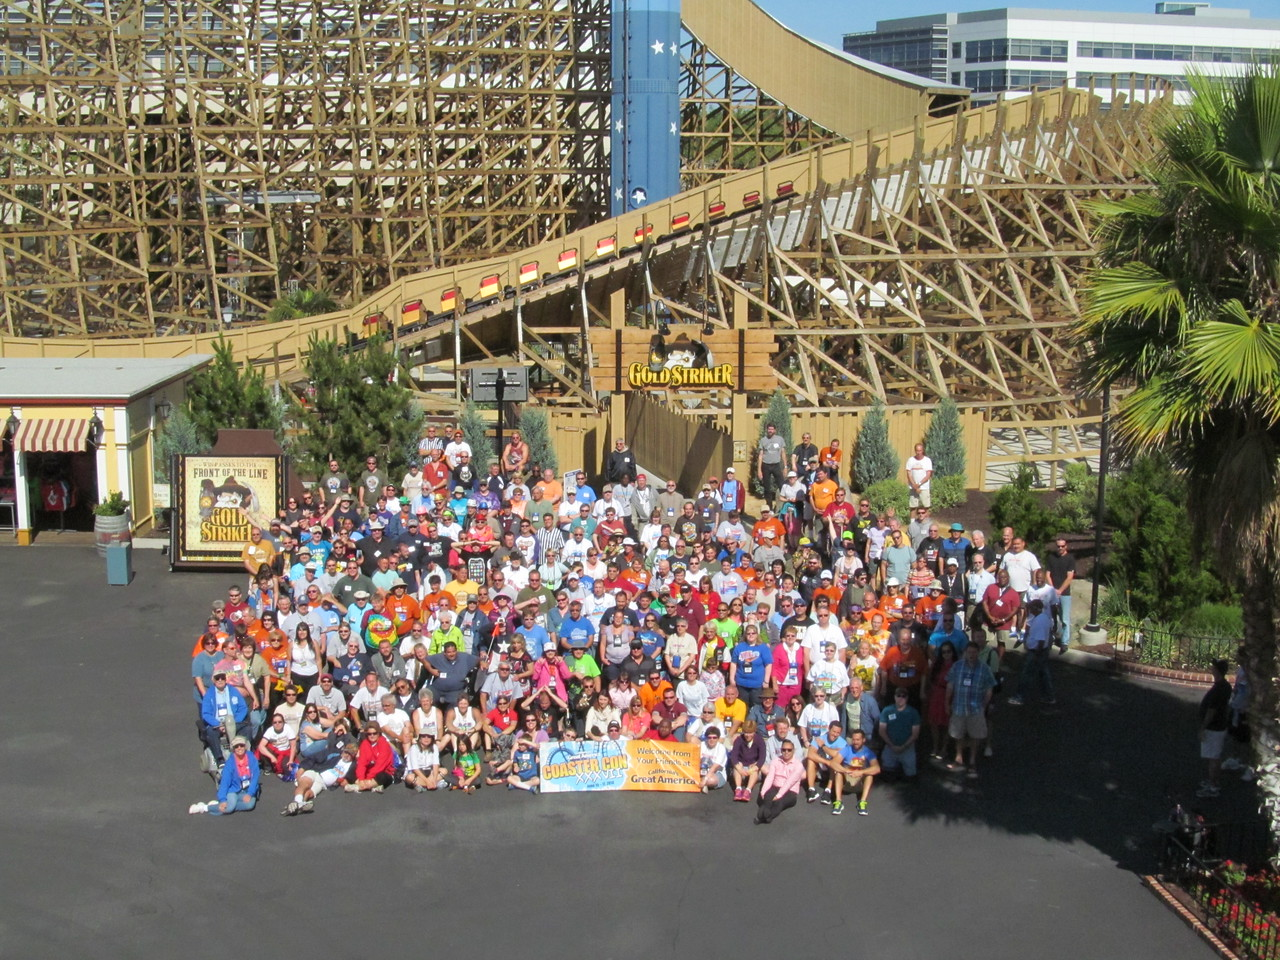 Coaster Con XXXVII, held June 15 – 20, 2014, at California's Great America, Six Flags Discovery Kingdom, Santa Cruz Beach Boardwalk and Gilroy Gardens. Photo taken at California's Great America, by S. Madonna Horcher.